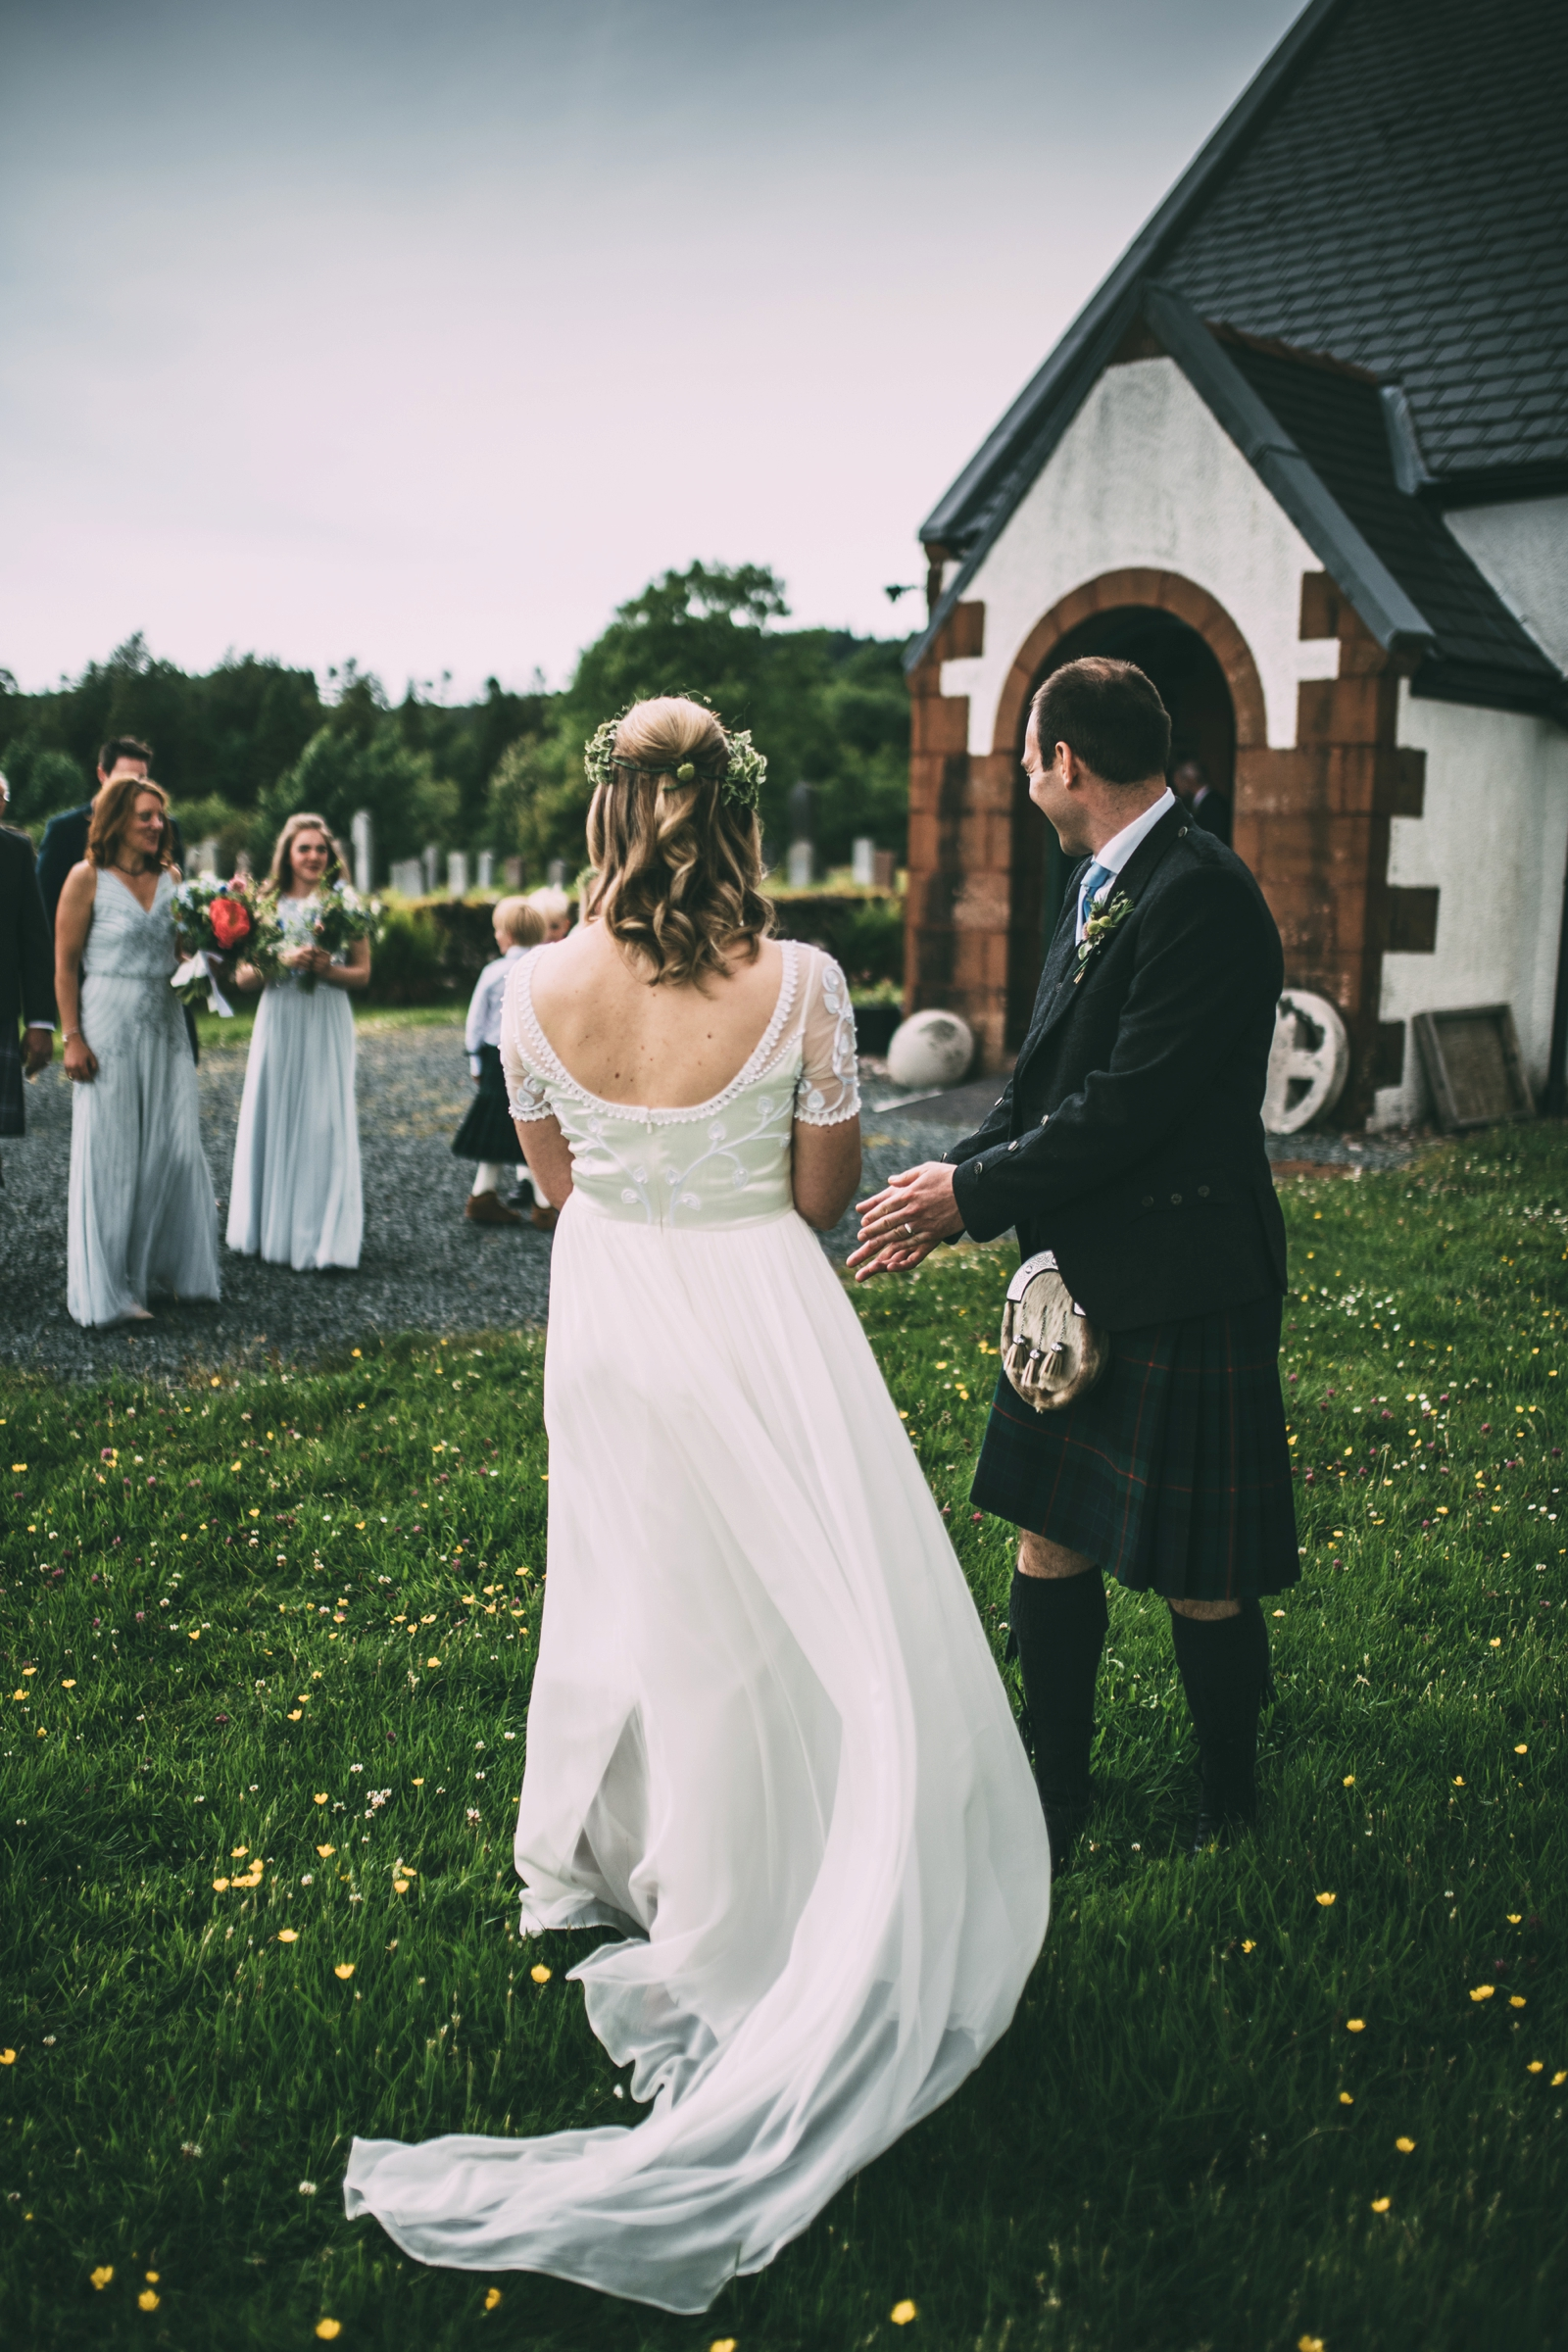 Northern Aye Photography_ Fiona and Derek_ Lochaline Village Wedding 66.jpg